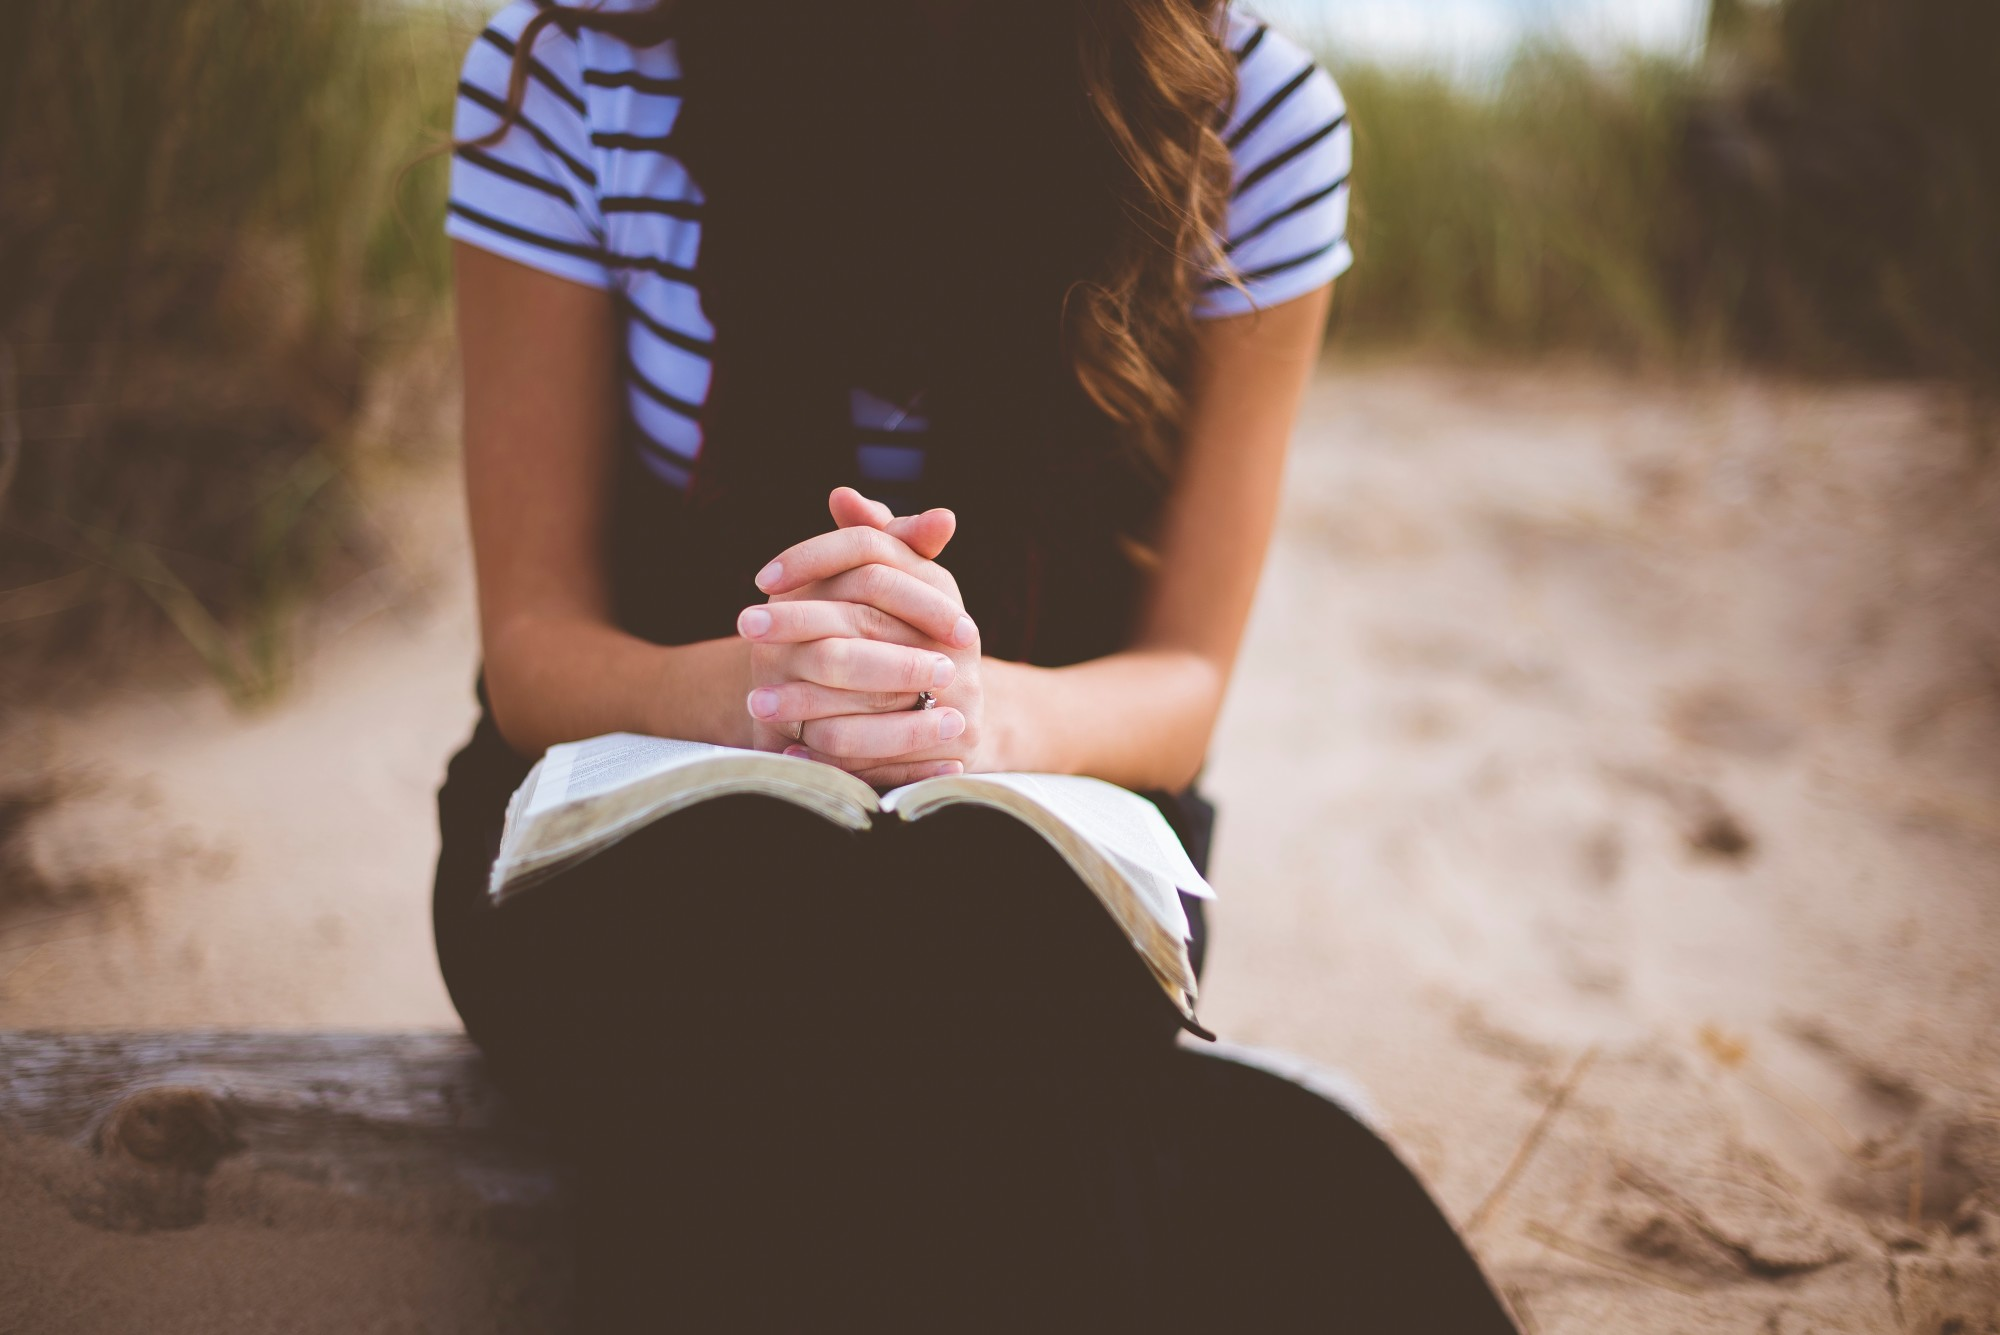 4 Great Gift Ideas for a Christian Woman